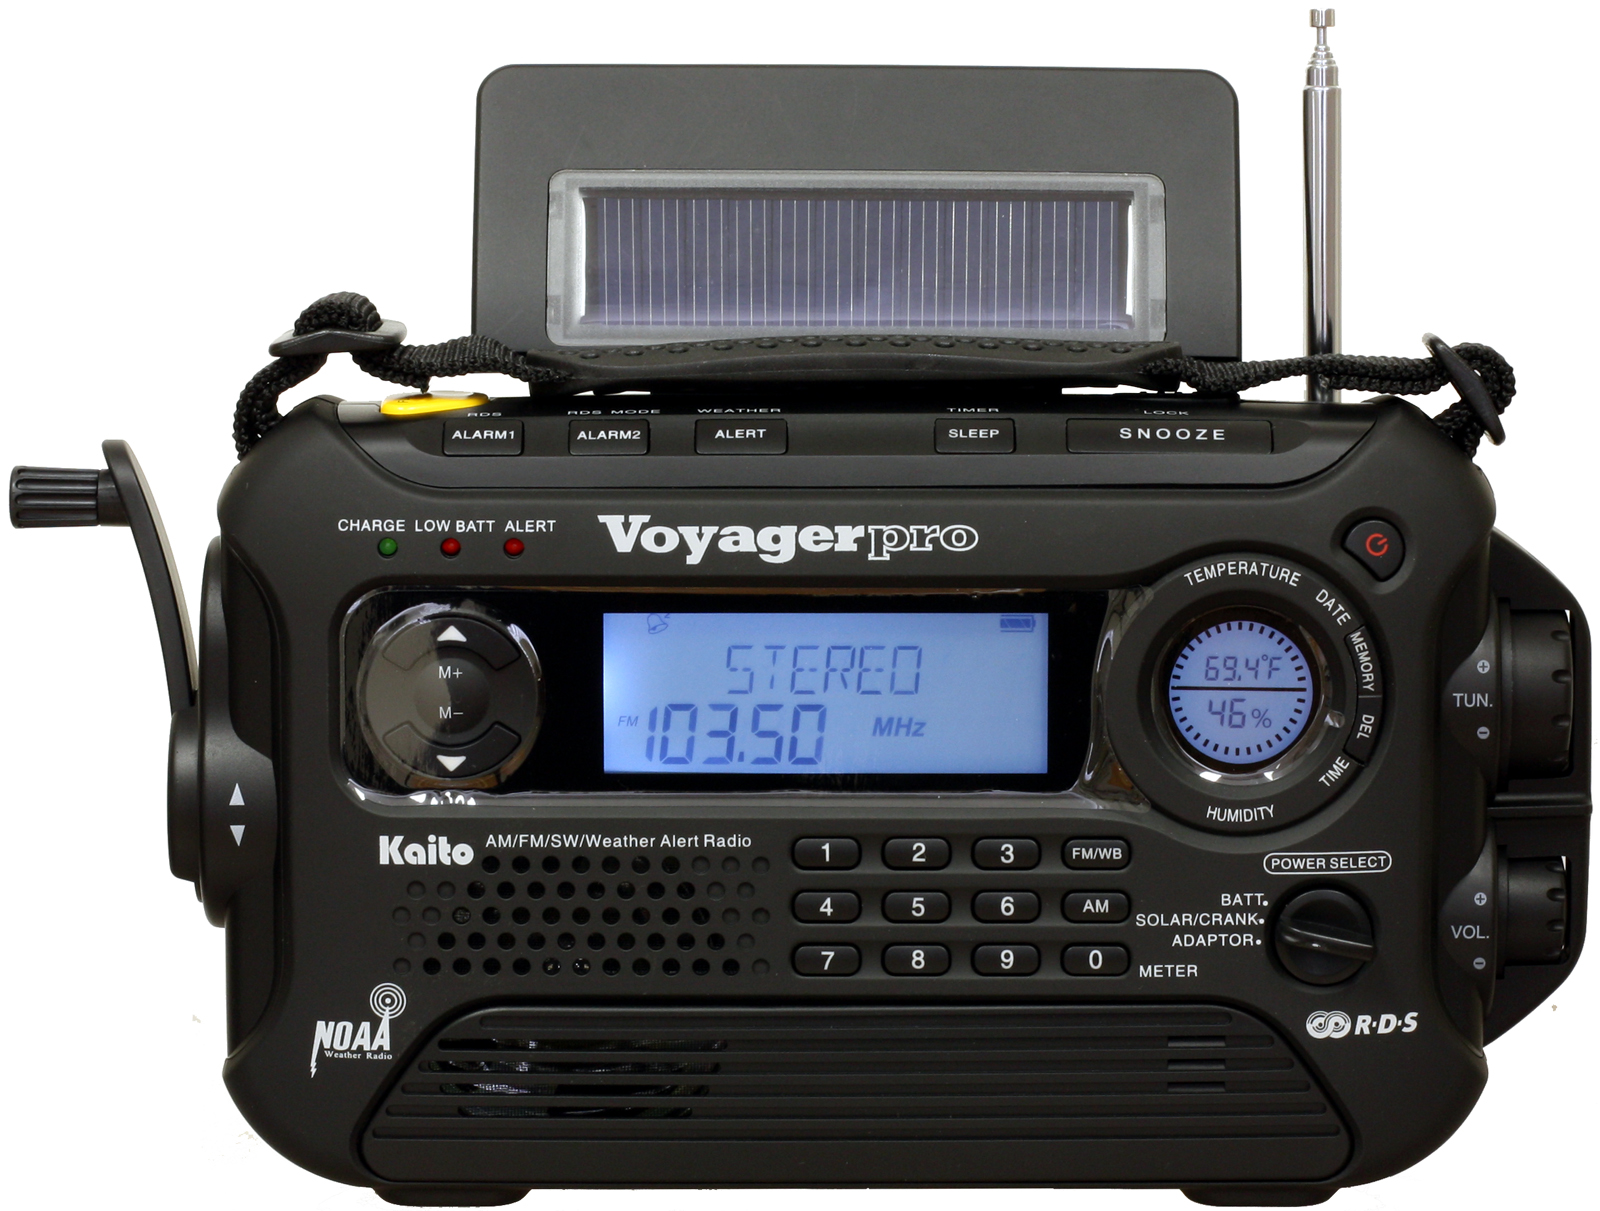 Default moreover Am Fm Stereo Digital Portable Radio besides Radio Portable further Sony SRF59SILVER SRF 59 Walkman AM FM Stereo as well Magnasonic Mag Ms857 Cd Player Stereo Speaker Micro System. on portable radios with best reception